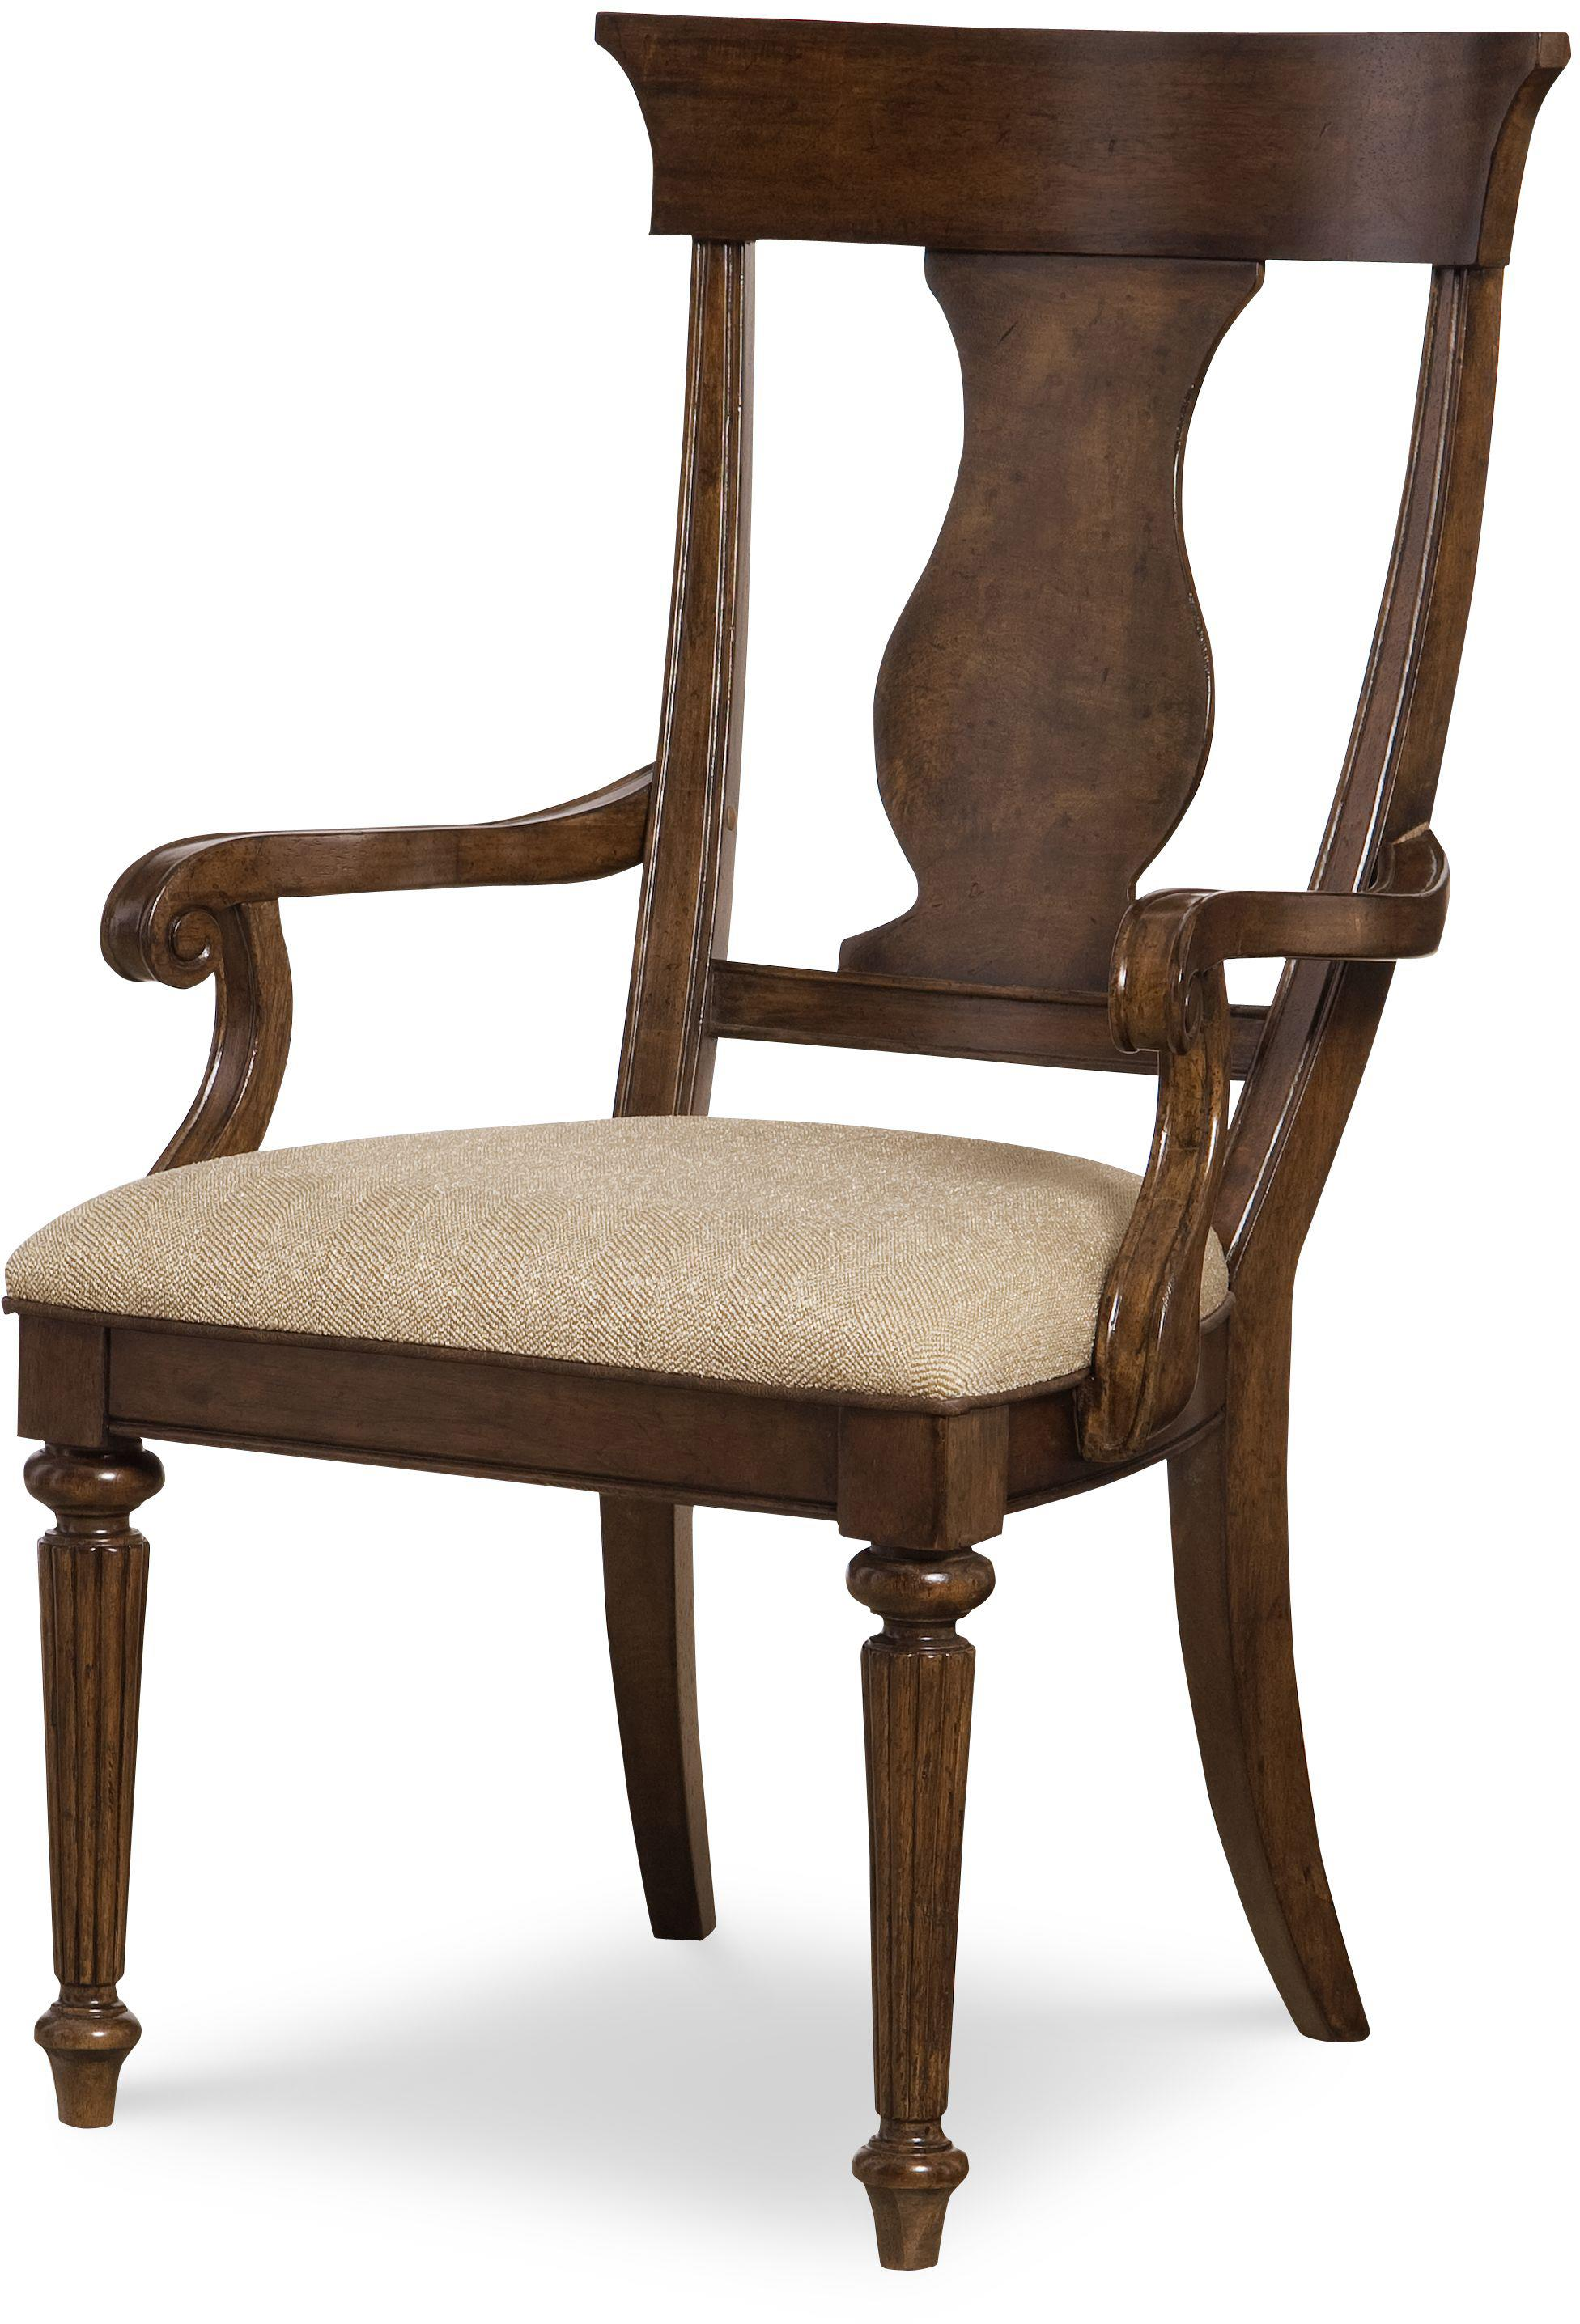 Legacy Classic Barrington Farm Splat Back Arm Chair  - Item Number: 5200-141 KD